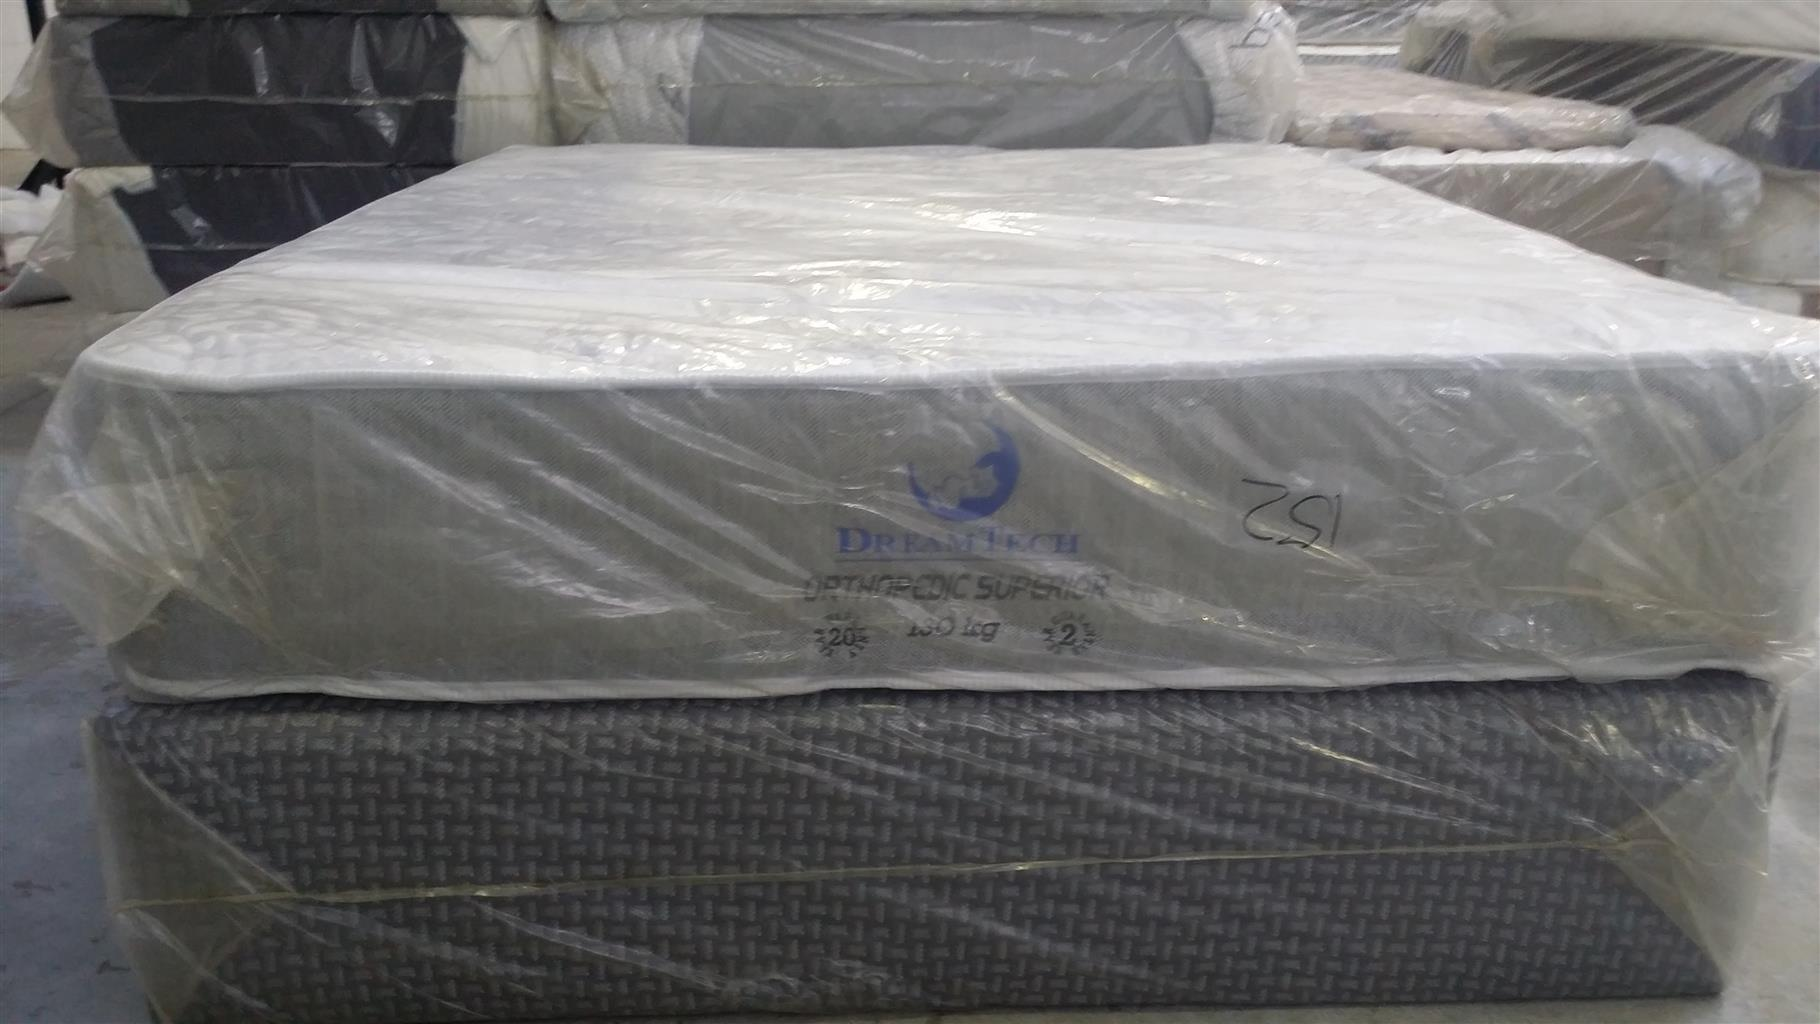 Orthopedic superior queen size mattresses on special junk mail